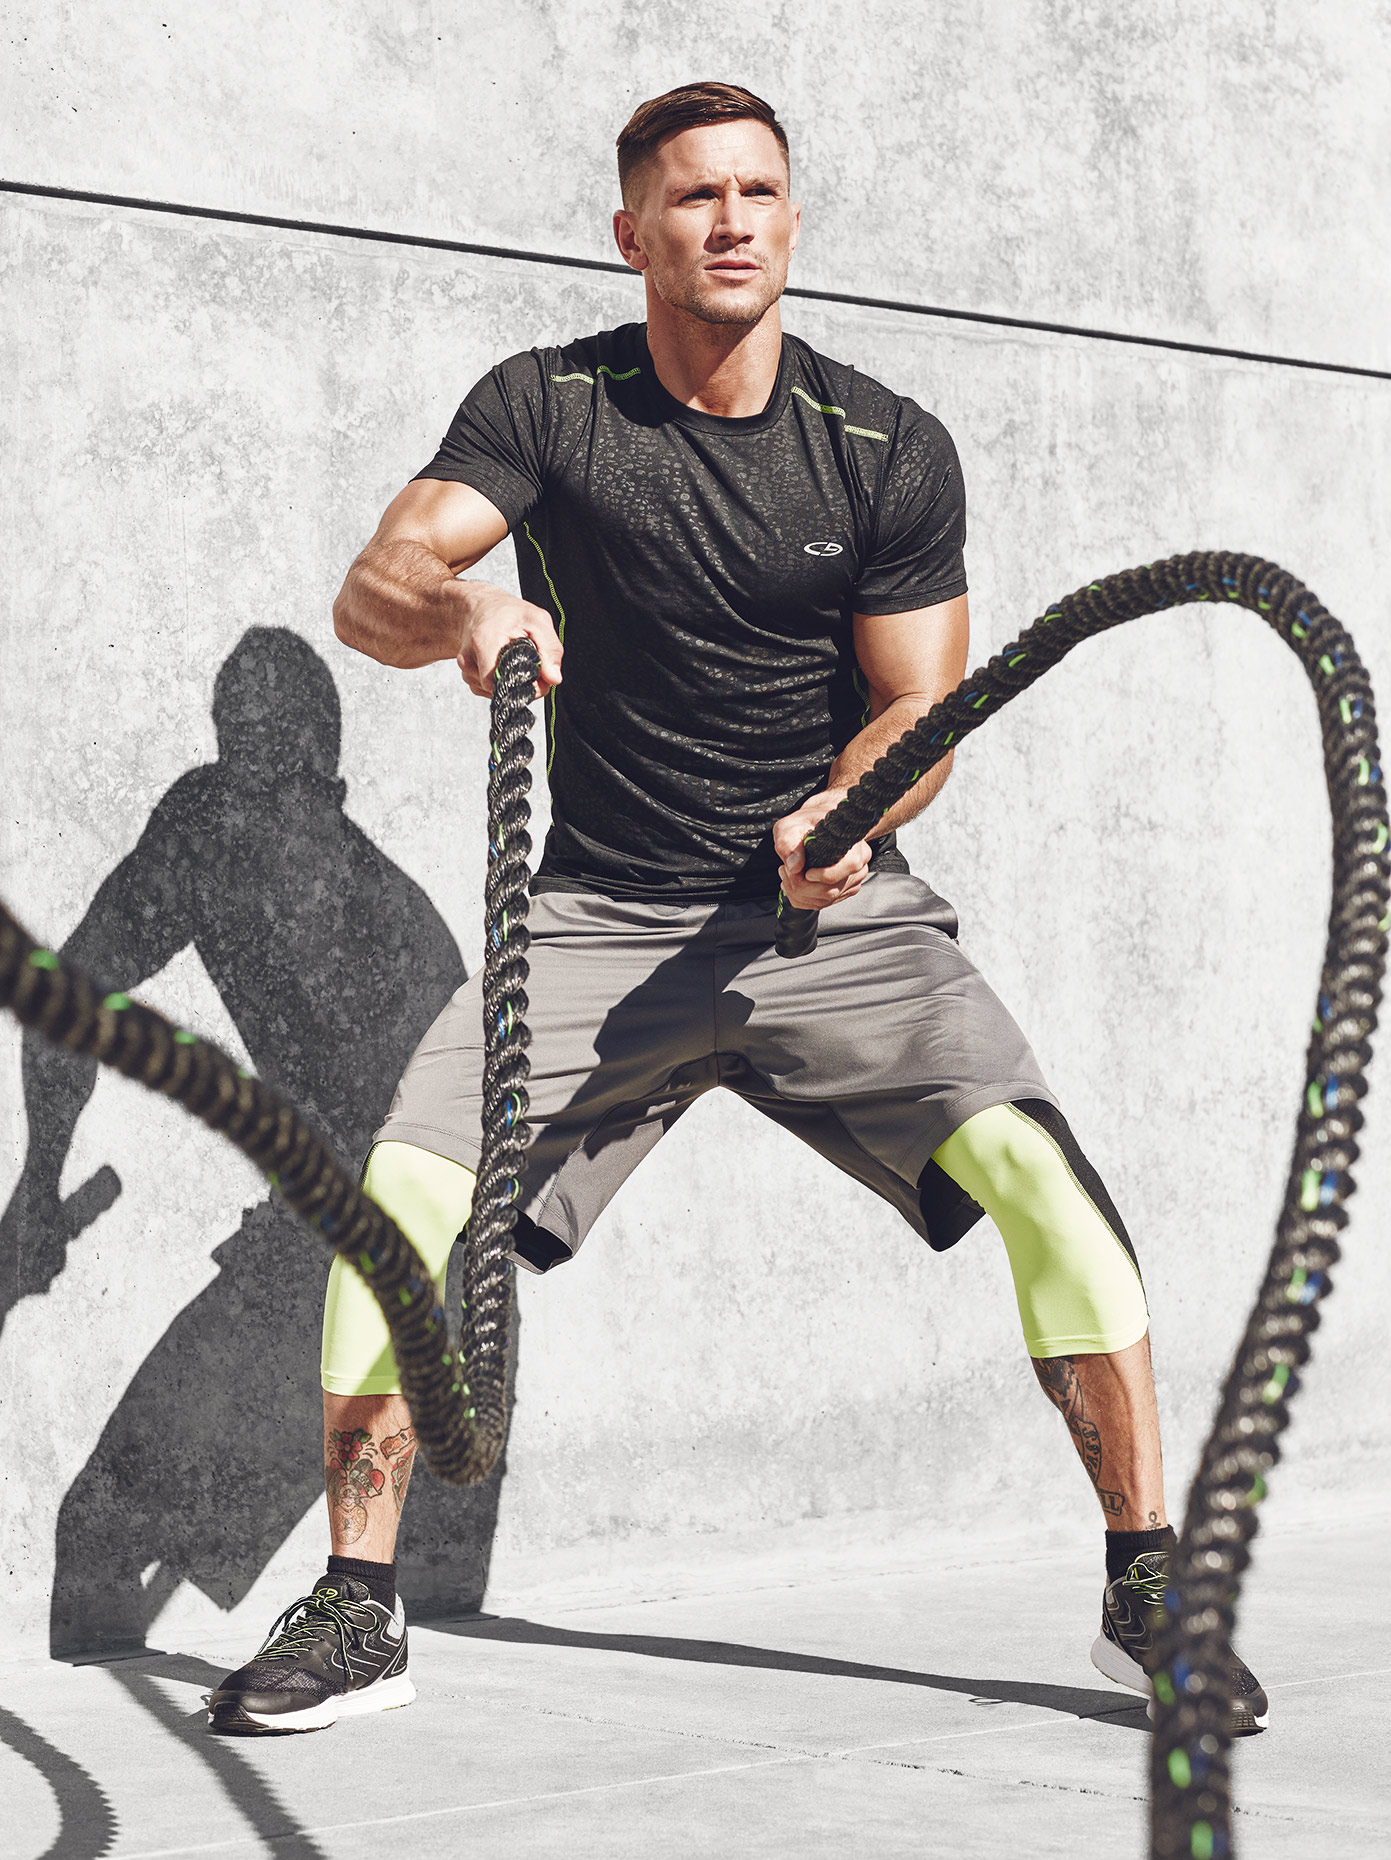 Target-make-battle-ropes-fitness